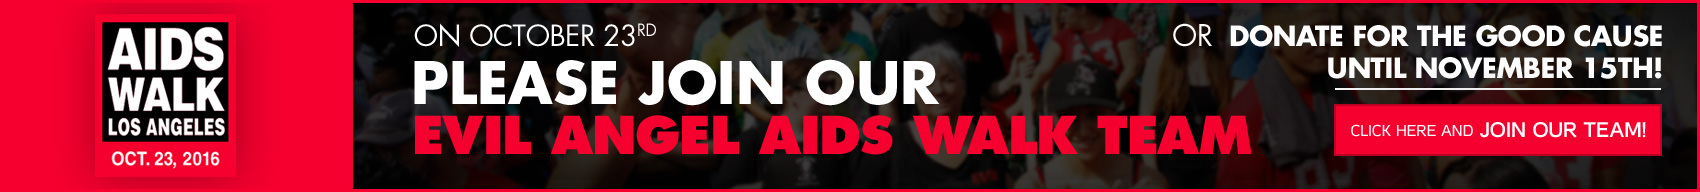 AIDS Walk Los Angeles. Oct. 23, 2016. Please join our Evil Angel AIDS Walk Team.